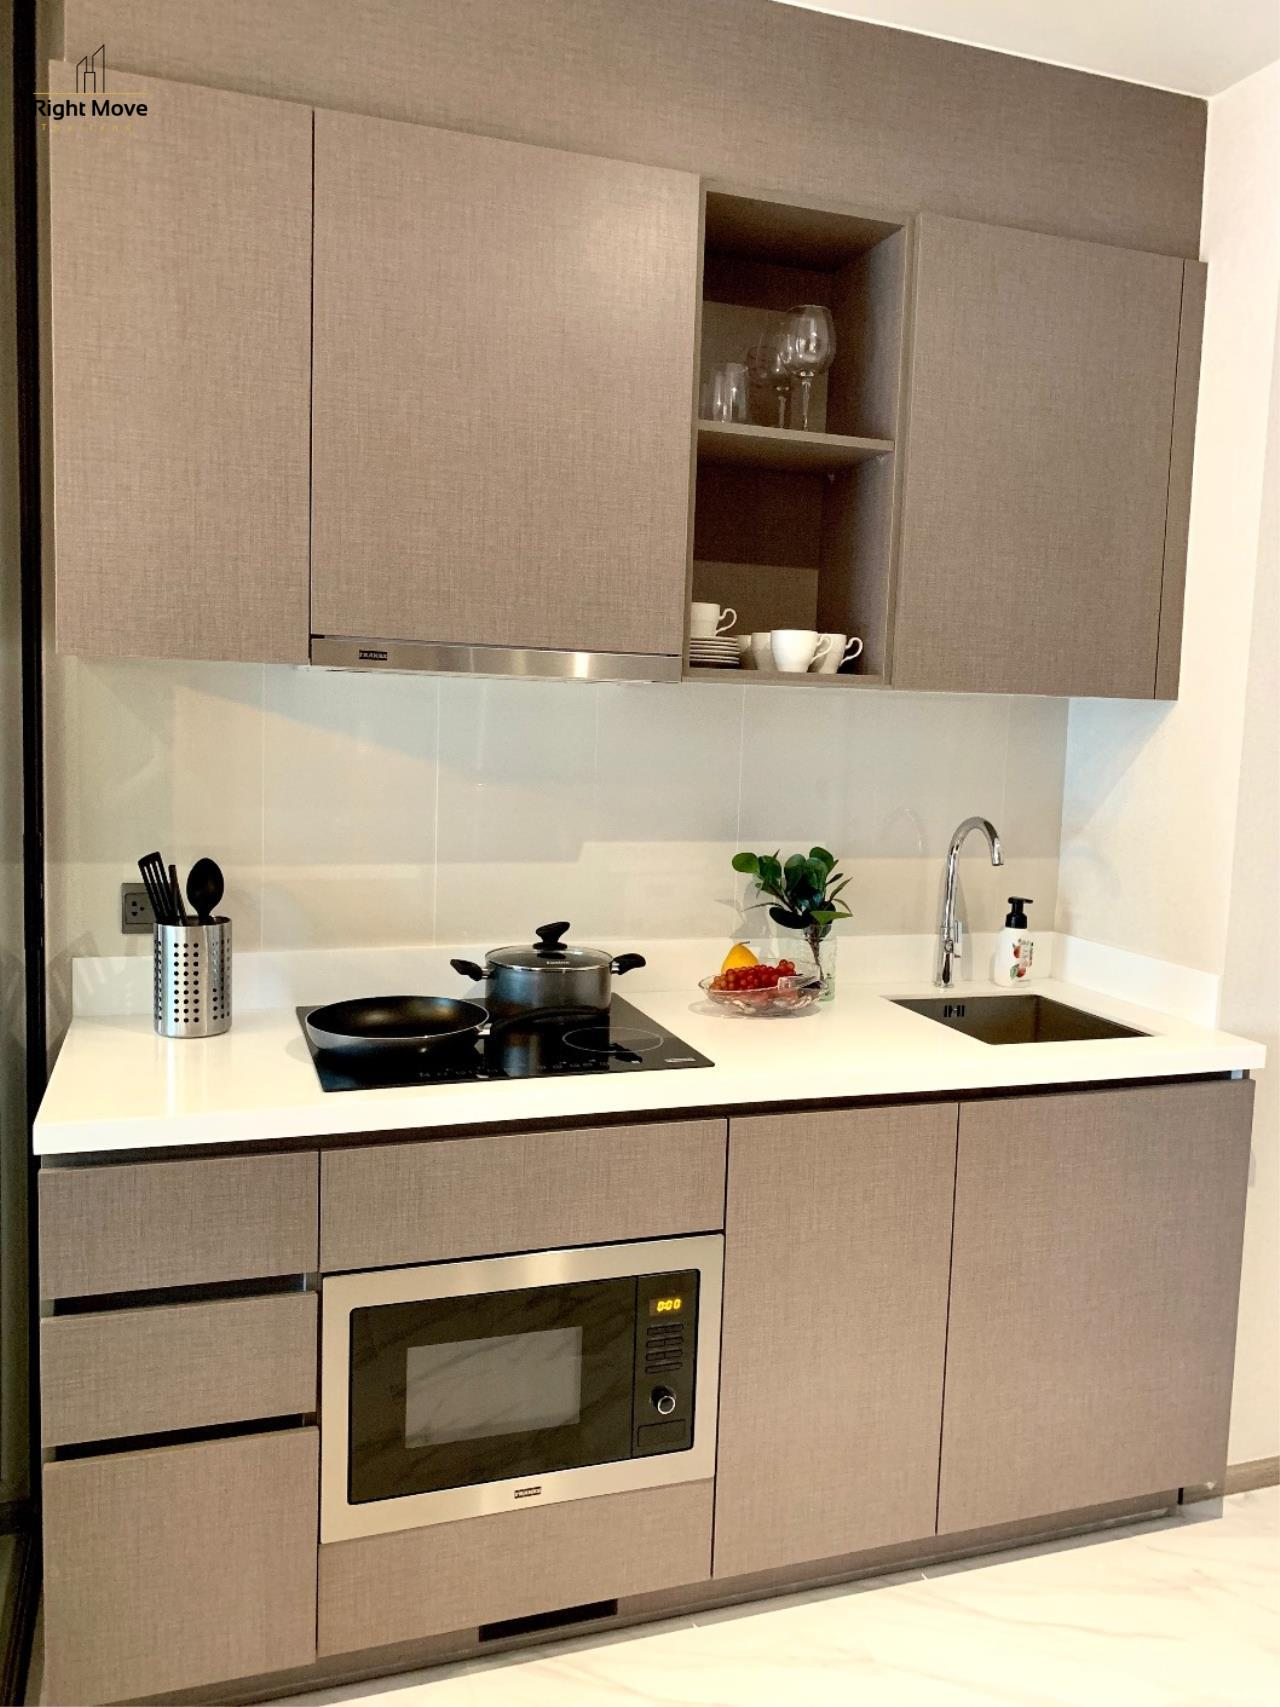 Right Move Thailand Agency's CA6603 Rhythm Ekkamai For Rent 70,000 THB 2 Bedrooms 70 Sqm 18